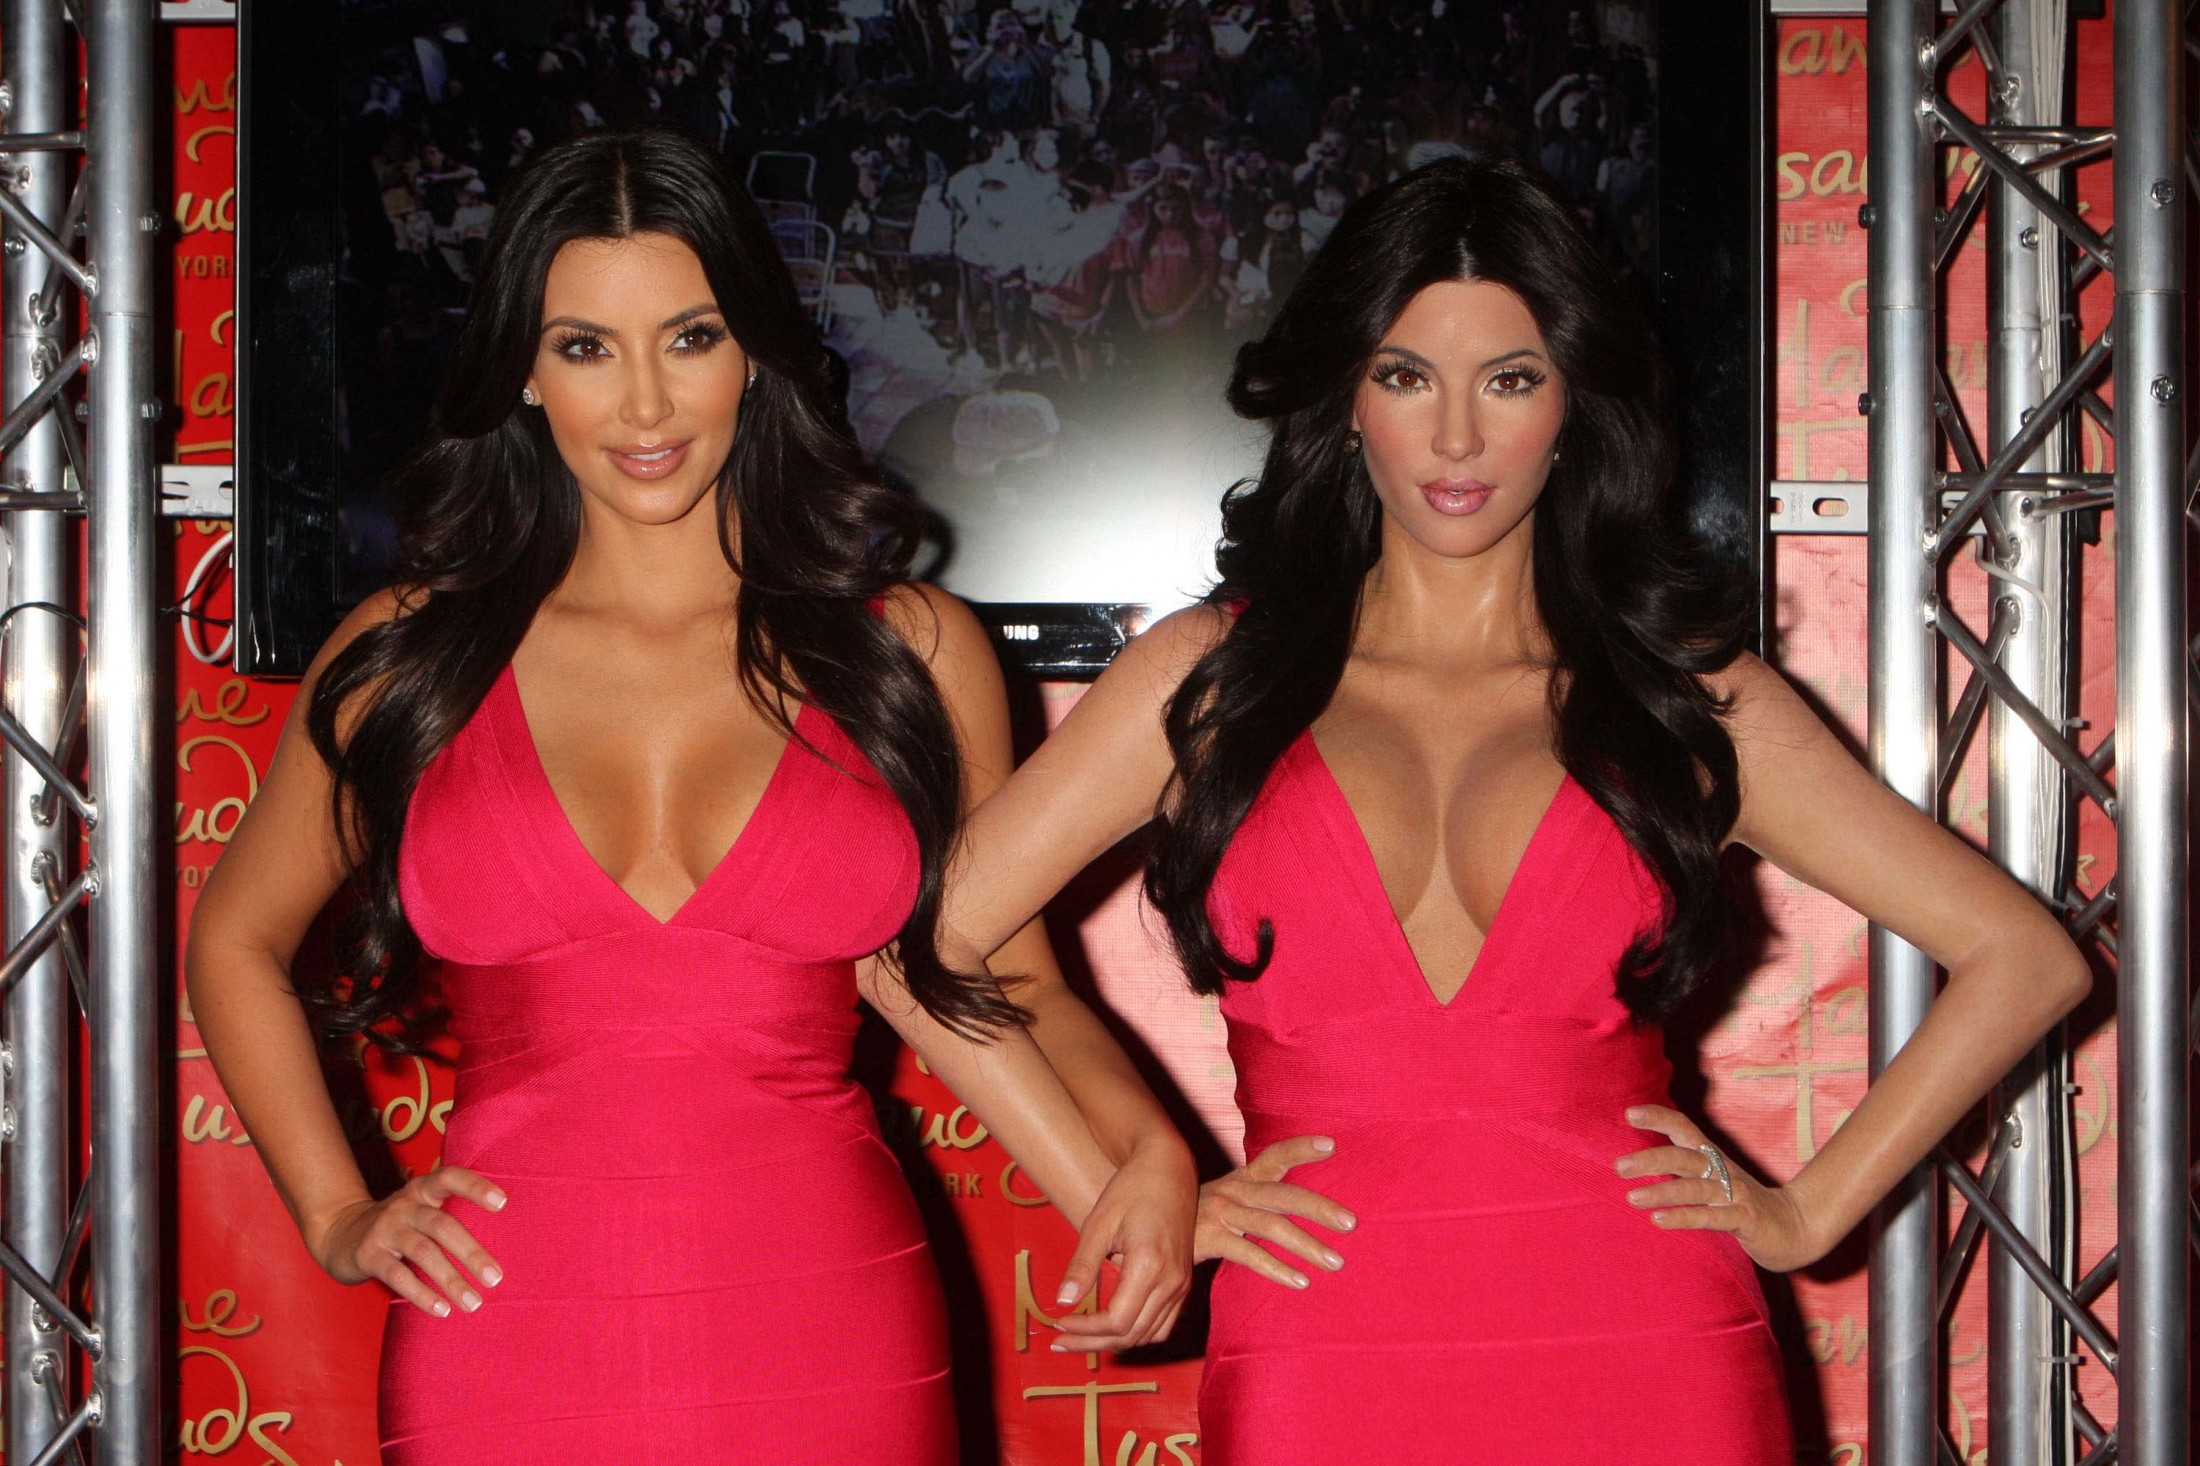 12 Worst Celebrity Wax Figures Fails - worst figures ...